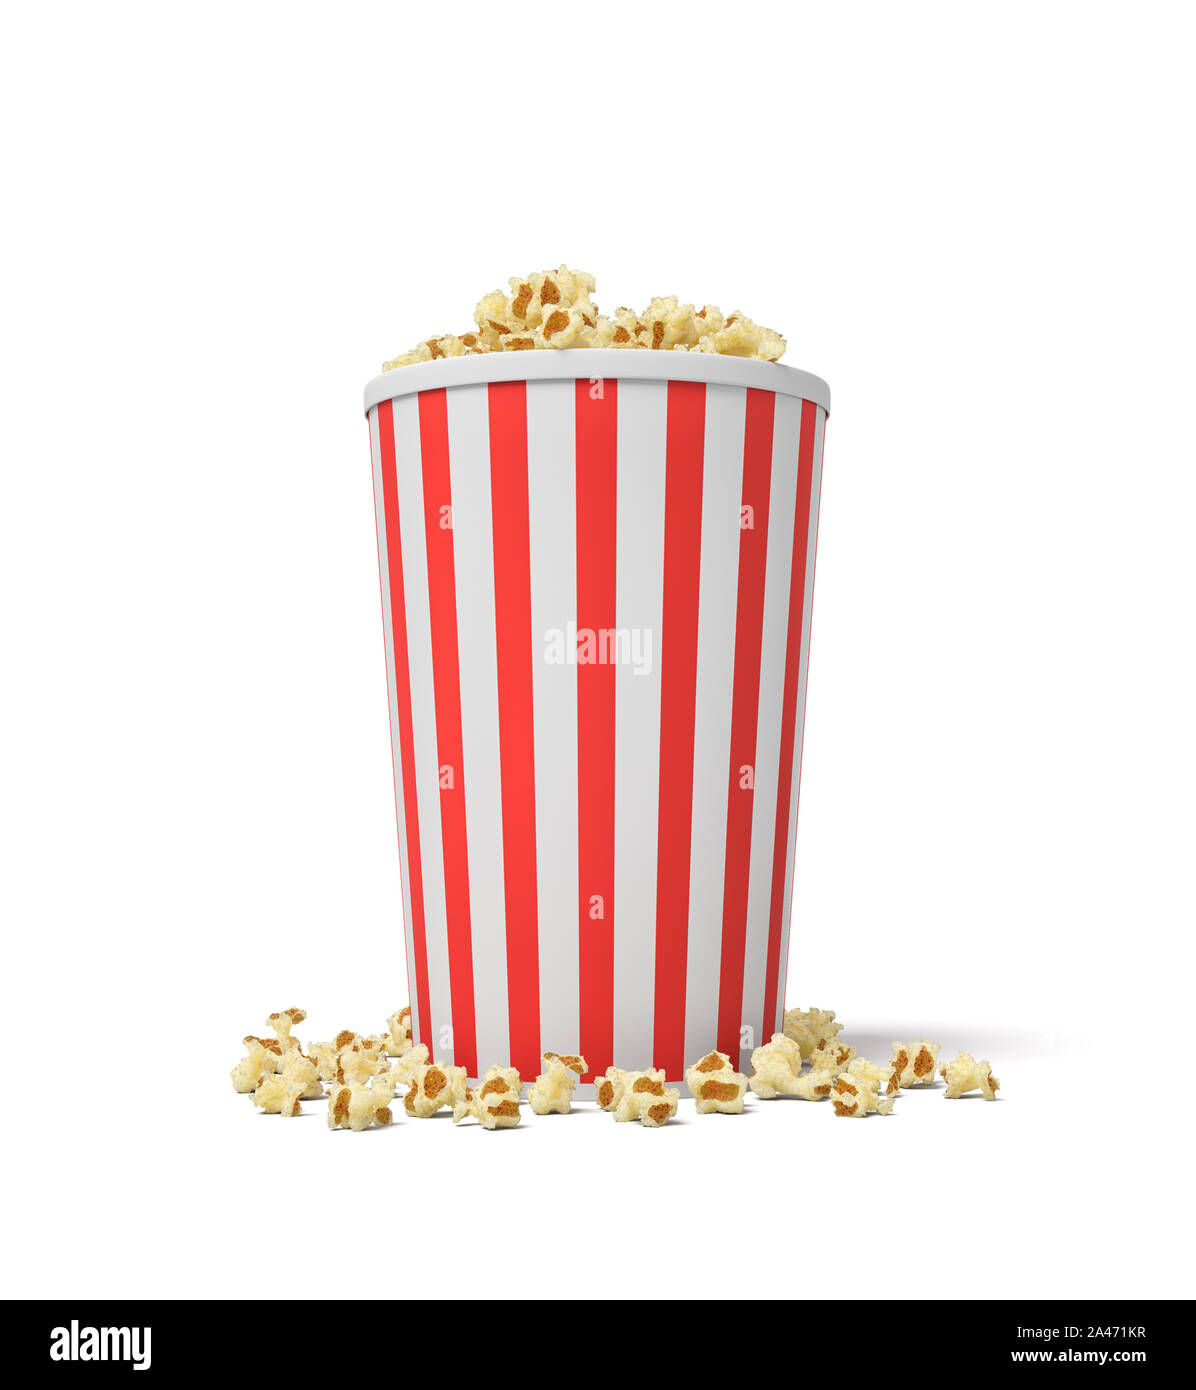 3d Rendering Of A Single Small Popcorn Bucket In Red And White Stripes With Popcorn Overflowing Of It Cinema Night Watching Movies Tasty Snack Stock Photo Alamy